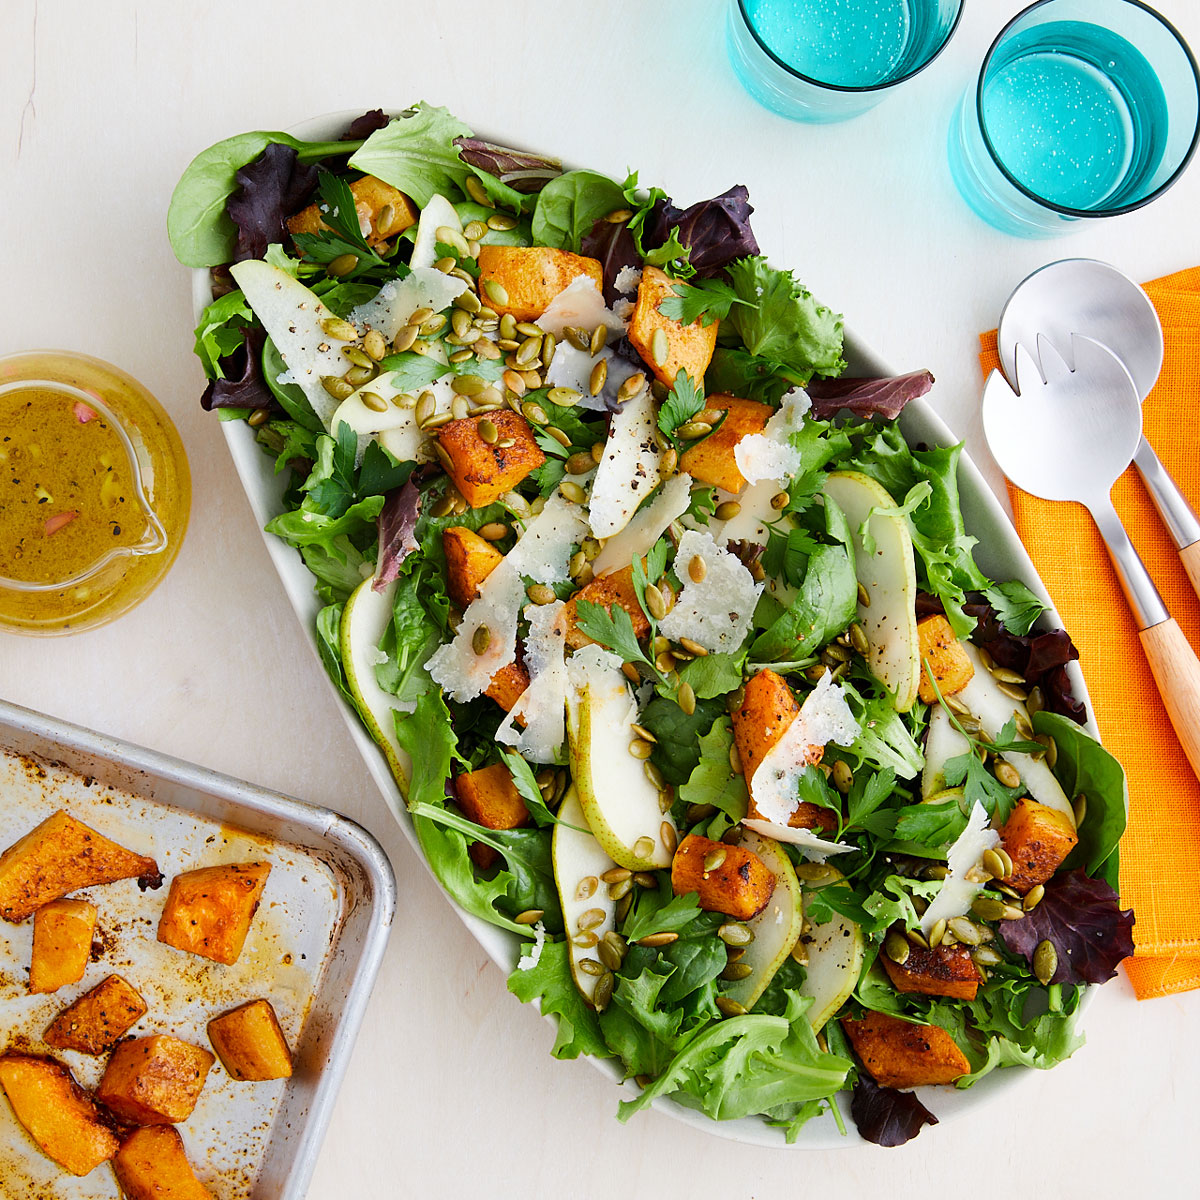 Fall Harvest Salad with pears